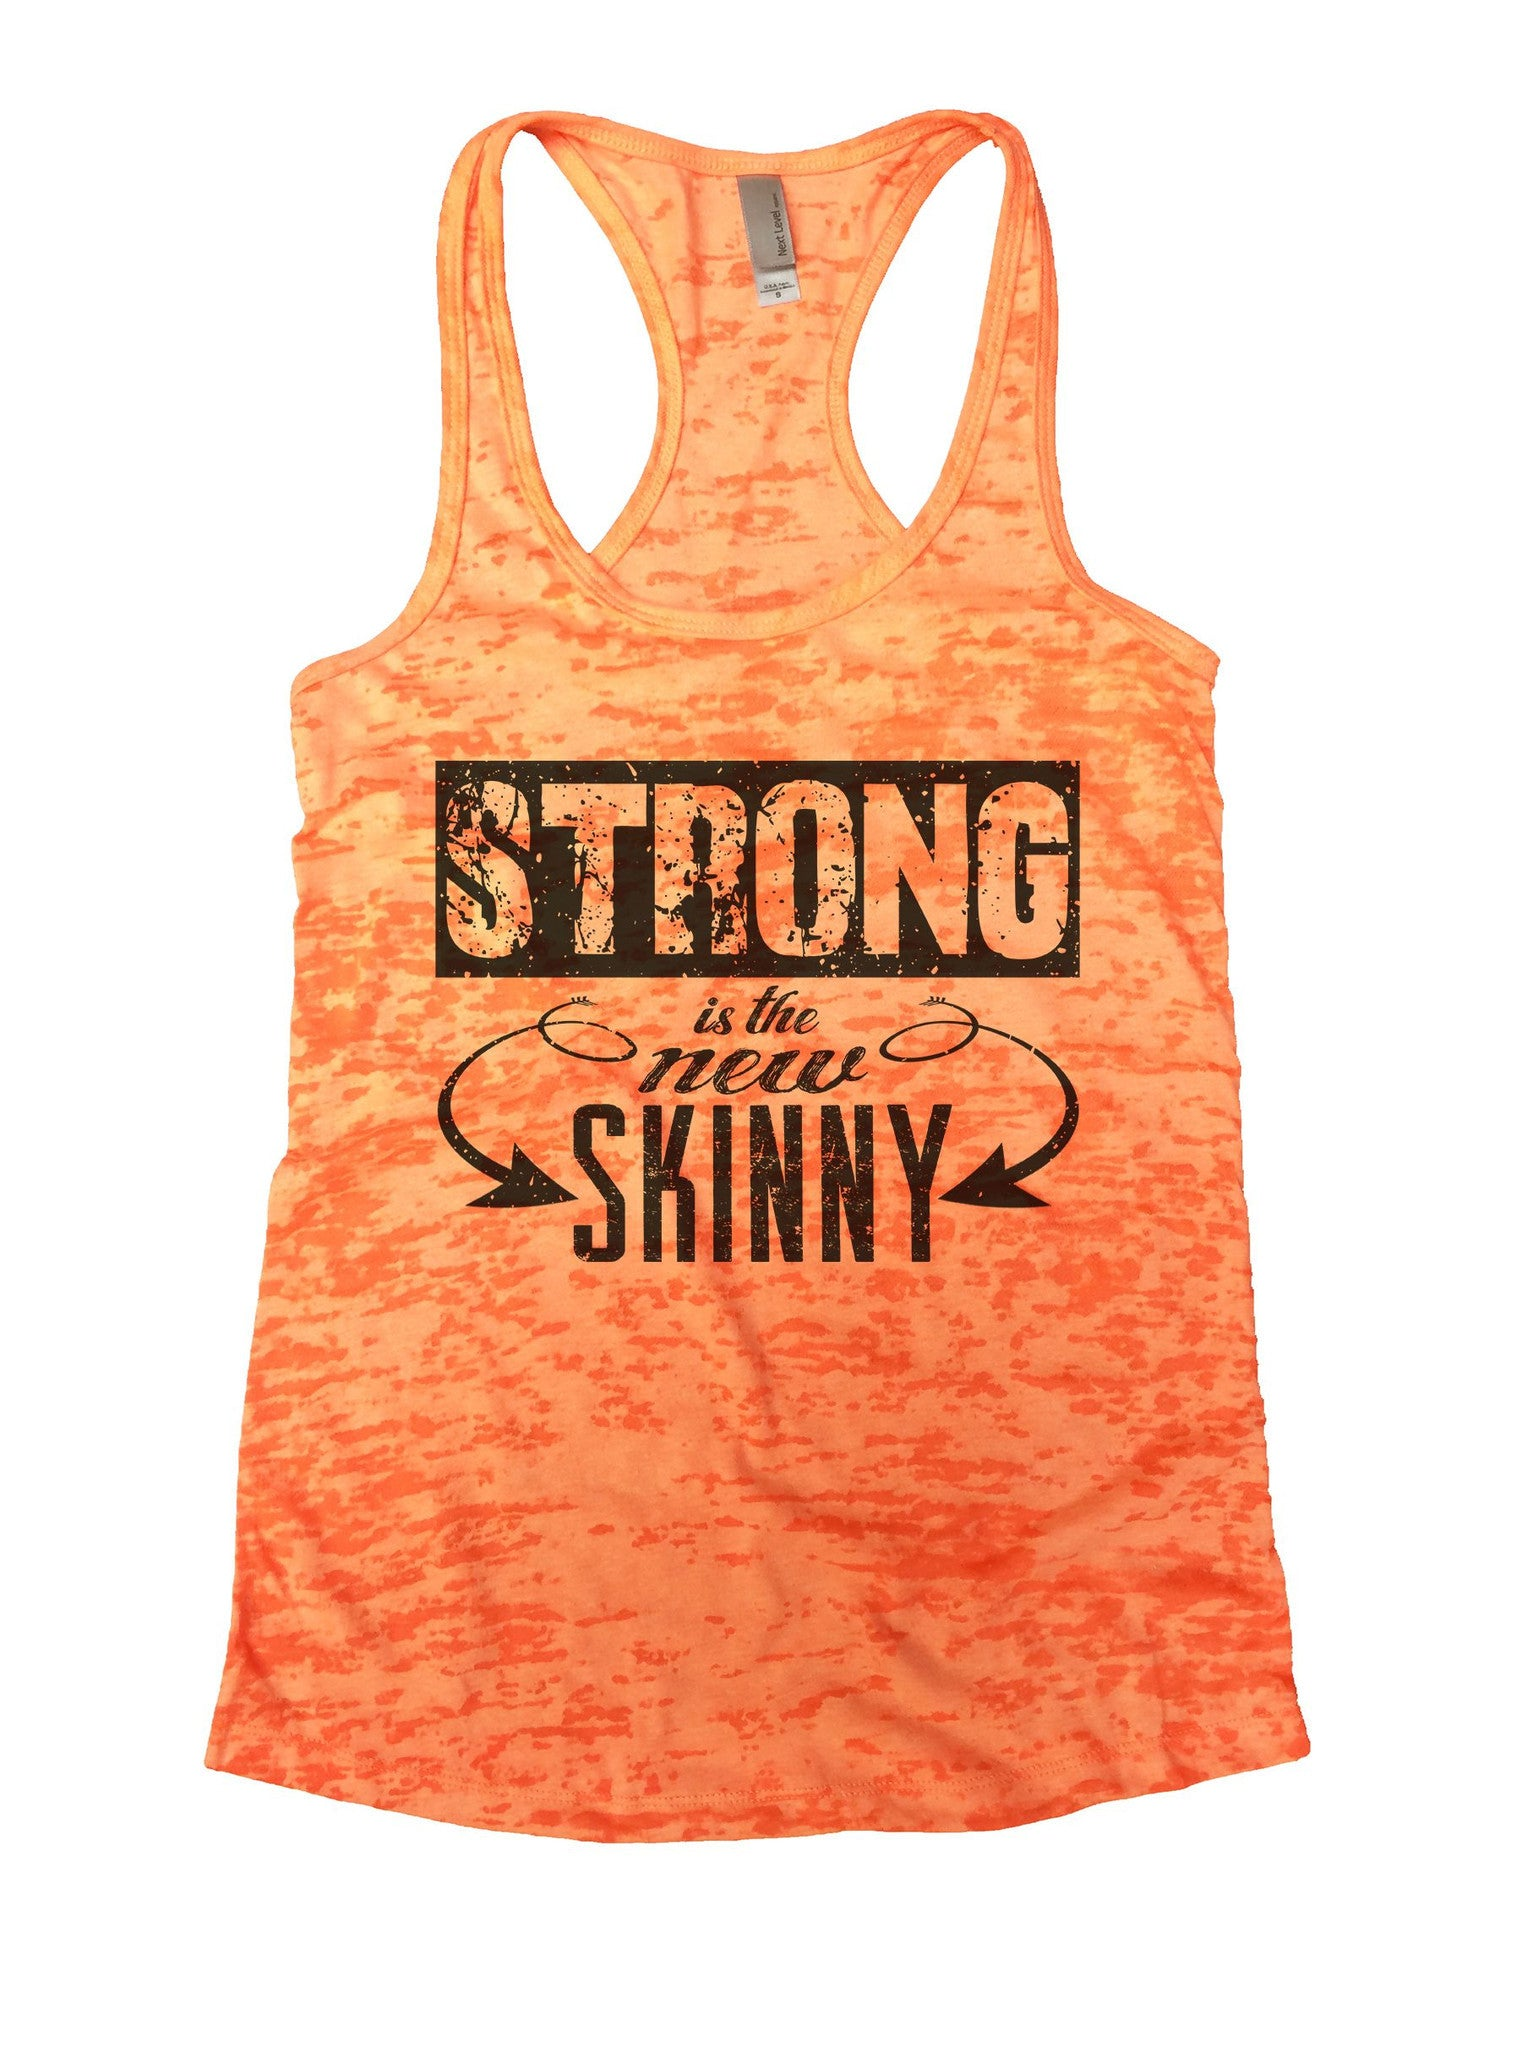 Strong Is The New Skinny Burnout Tank Top By BurnoutTankTops.com - 1018 - Funny Shirts Tank Tops Burnouts and Triblends  - 3